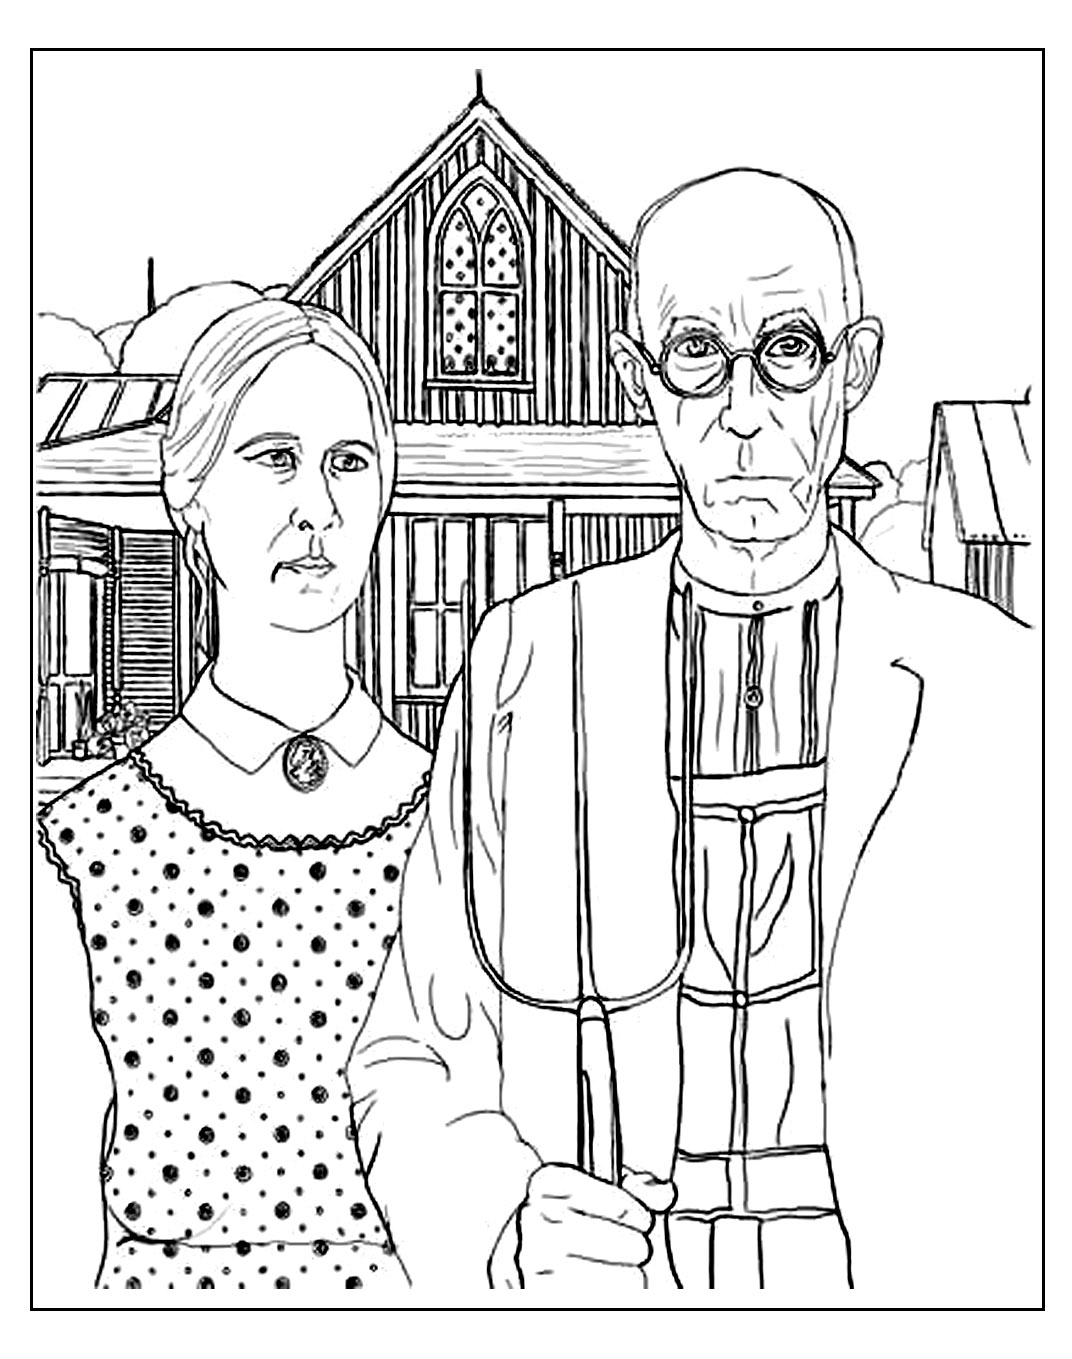 Grant wood american gothic masterpieces adult coloring pages Gothic coloring books for adults